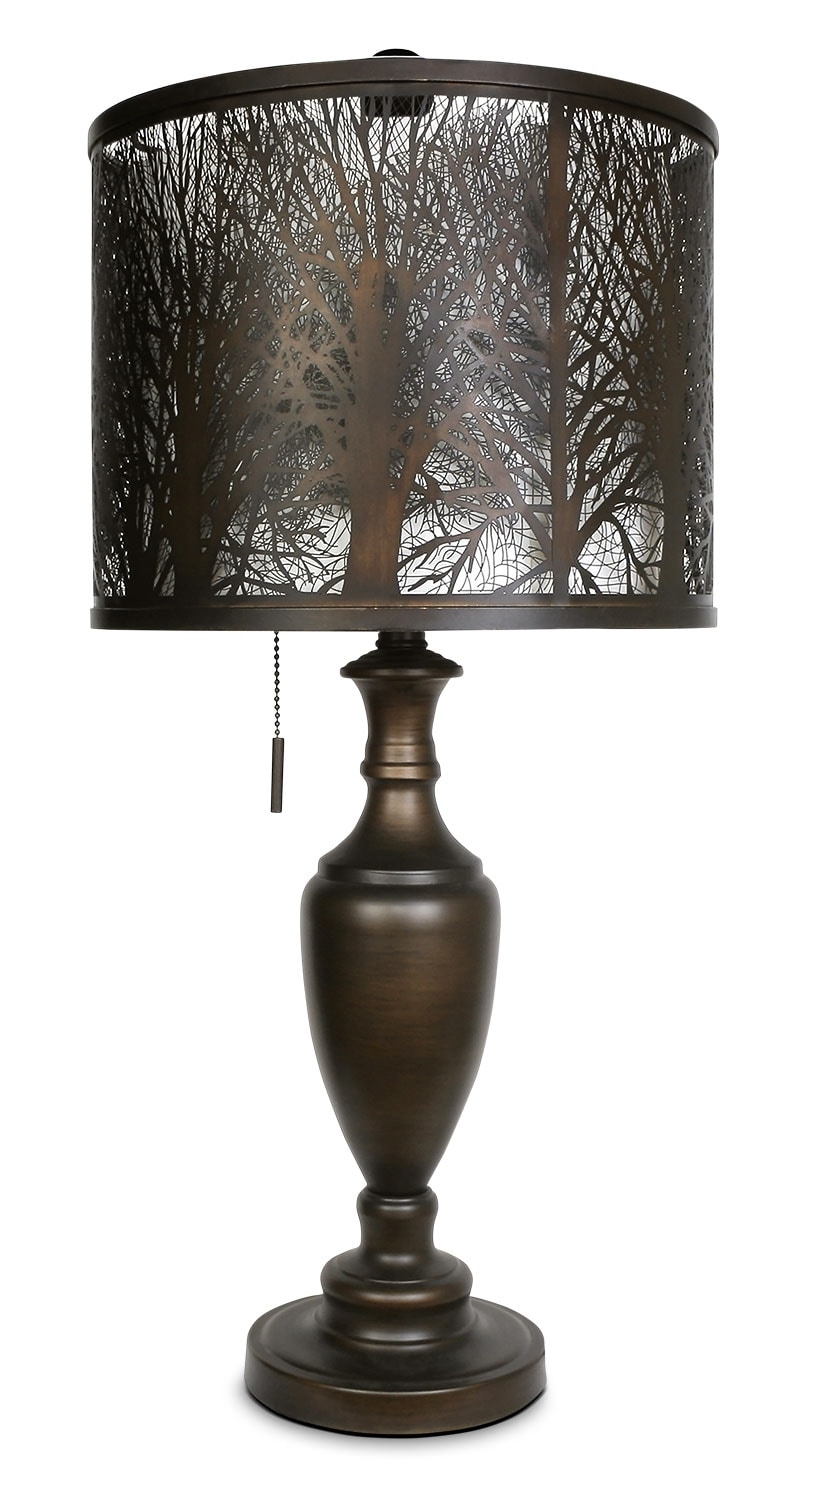 Home Accessories - Bean Bronze Table Lamp with Cut-Out Shade